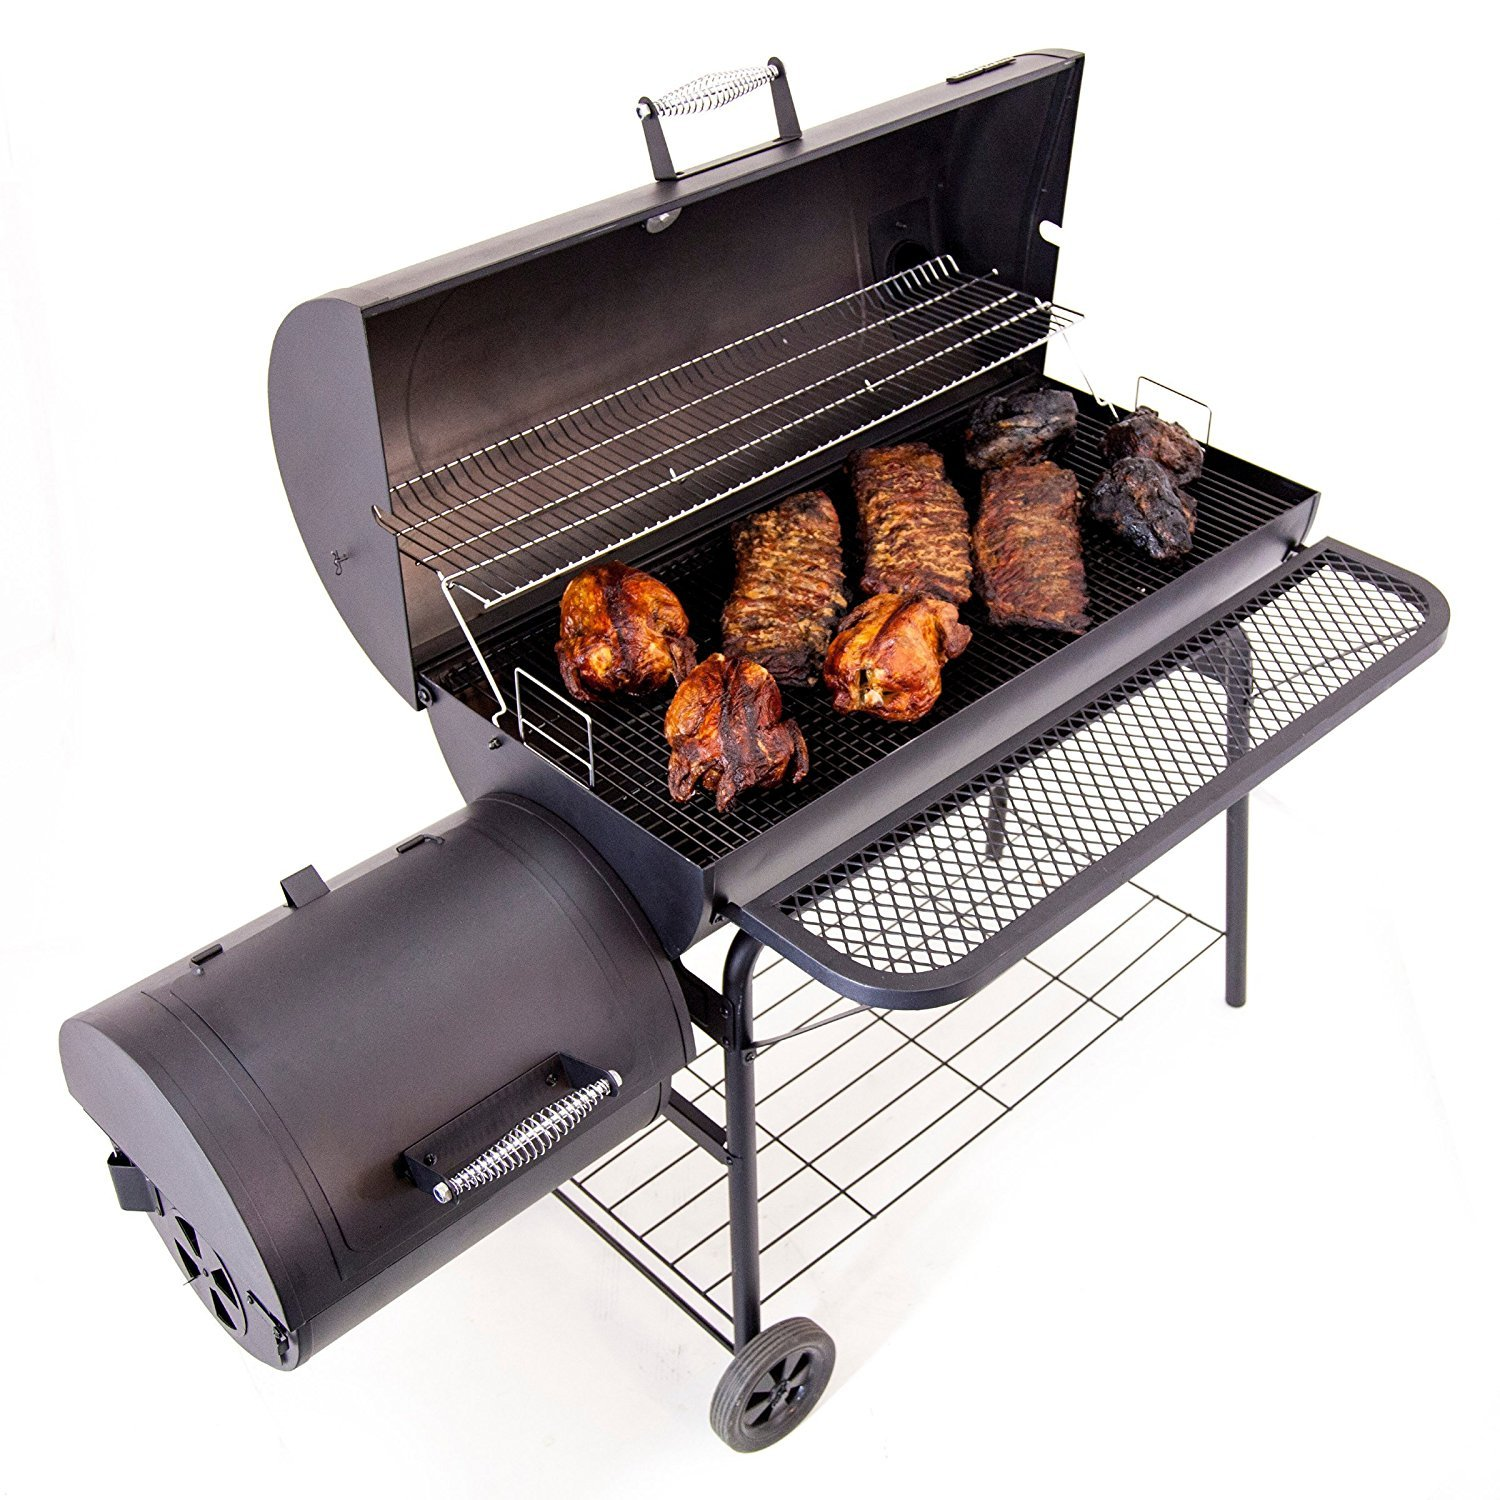 Most Popular Selling Professional Smoker Grill Barbecue With Portable Wheeled Cart- Full 670 Sq Inch Main Cooking Surface Porcelain Non-Stick Surface- 1280 Total Cooking Area Multiple Dampers Durable